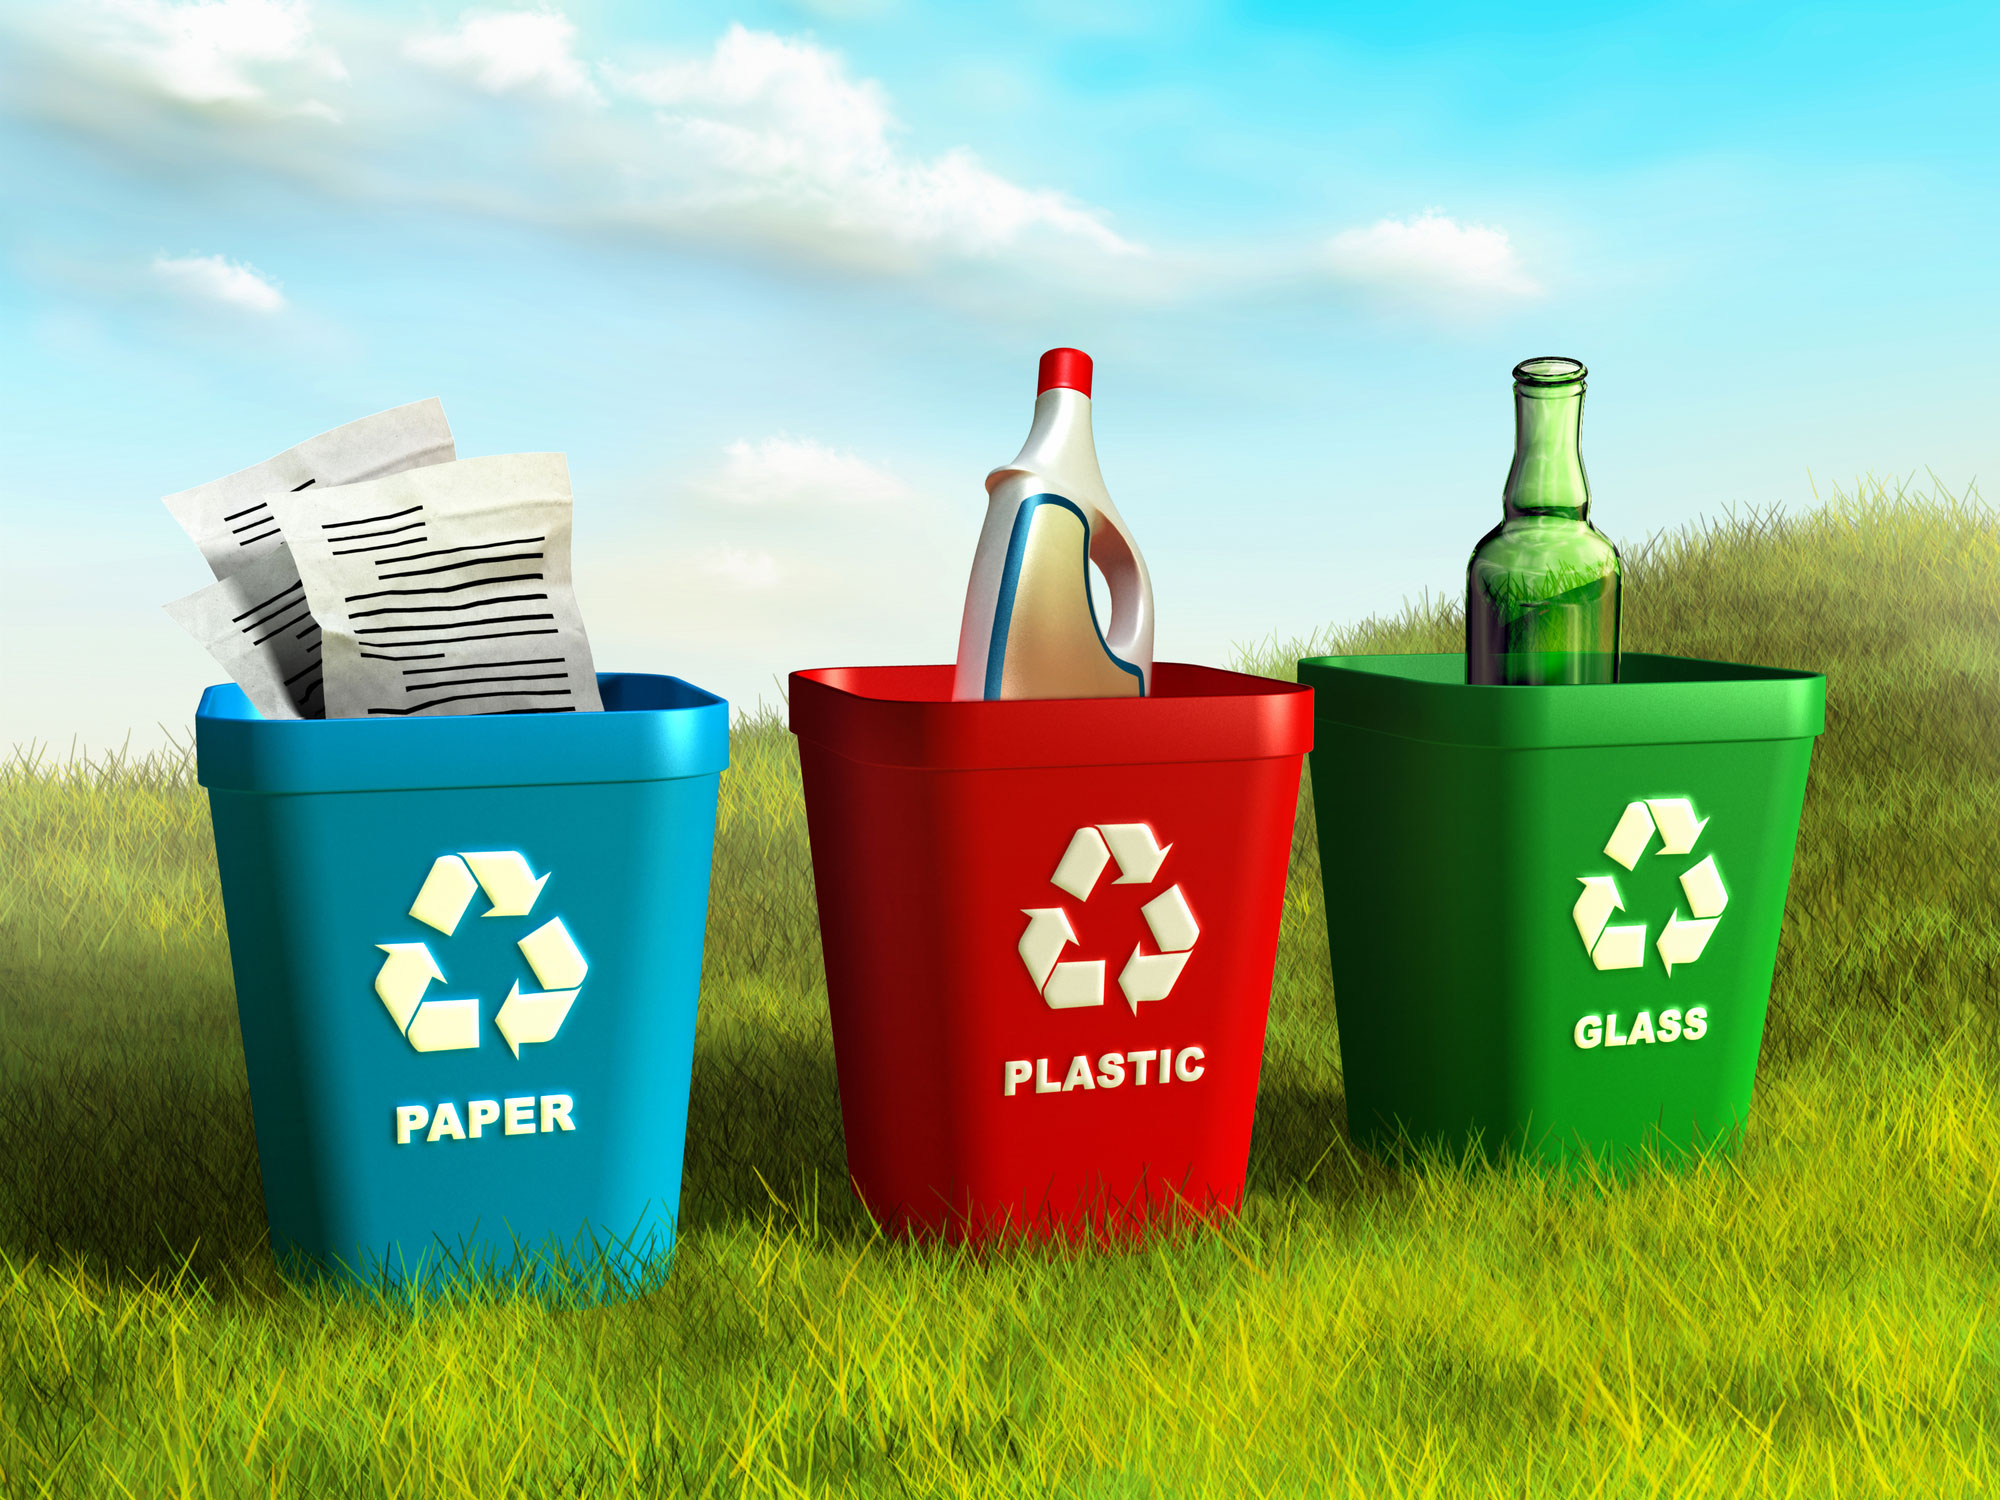 Recycling bins - paper, plastic and glass